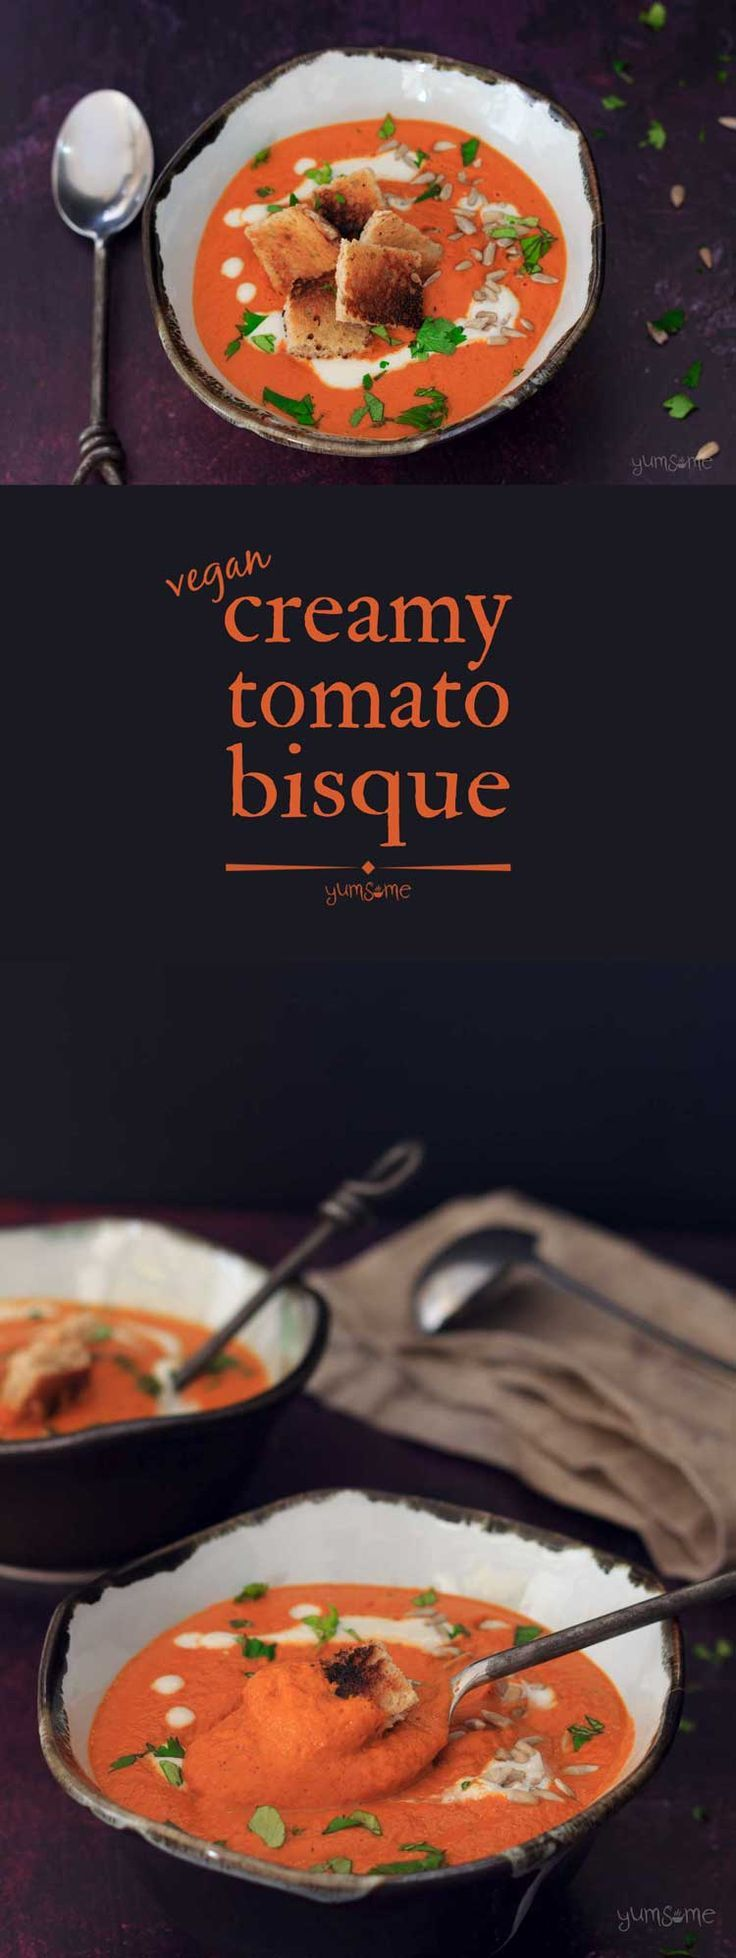 Ready in 8 mins, and only 174 cals, this creamy #vegan #tomato #bisque owes its smooth velvety texture and richness to B Vitamin-rich #sunflower seeds.  | yumsome.com via @yums0me